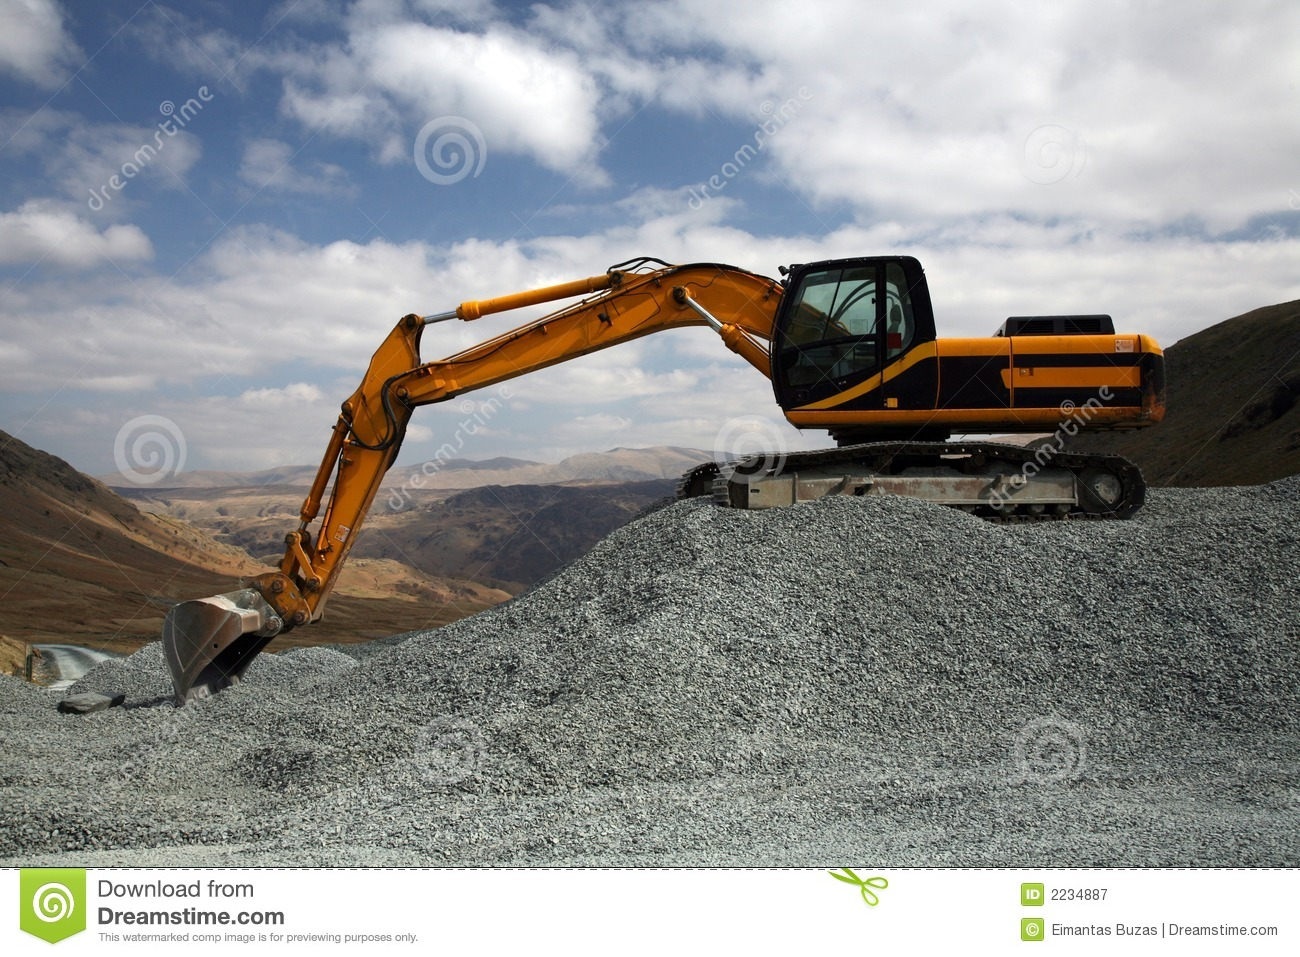 Mining Site Royalty Free Stock Photography - Image: 2234887: www.dreamstime.com/royalty-free-stock-photography-mining-site...